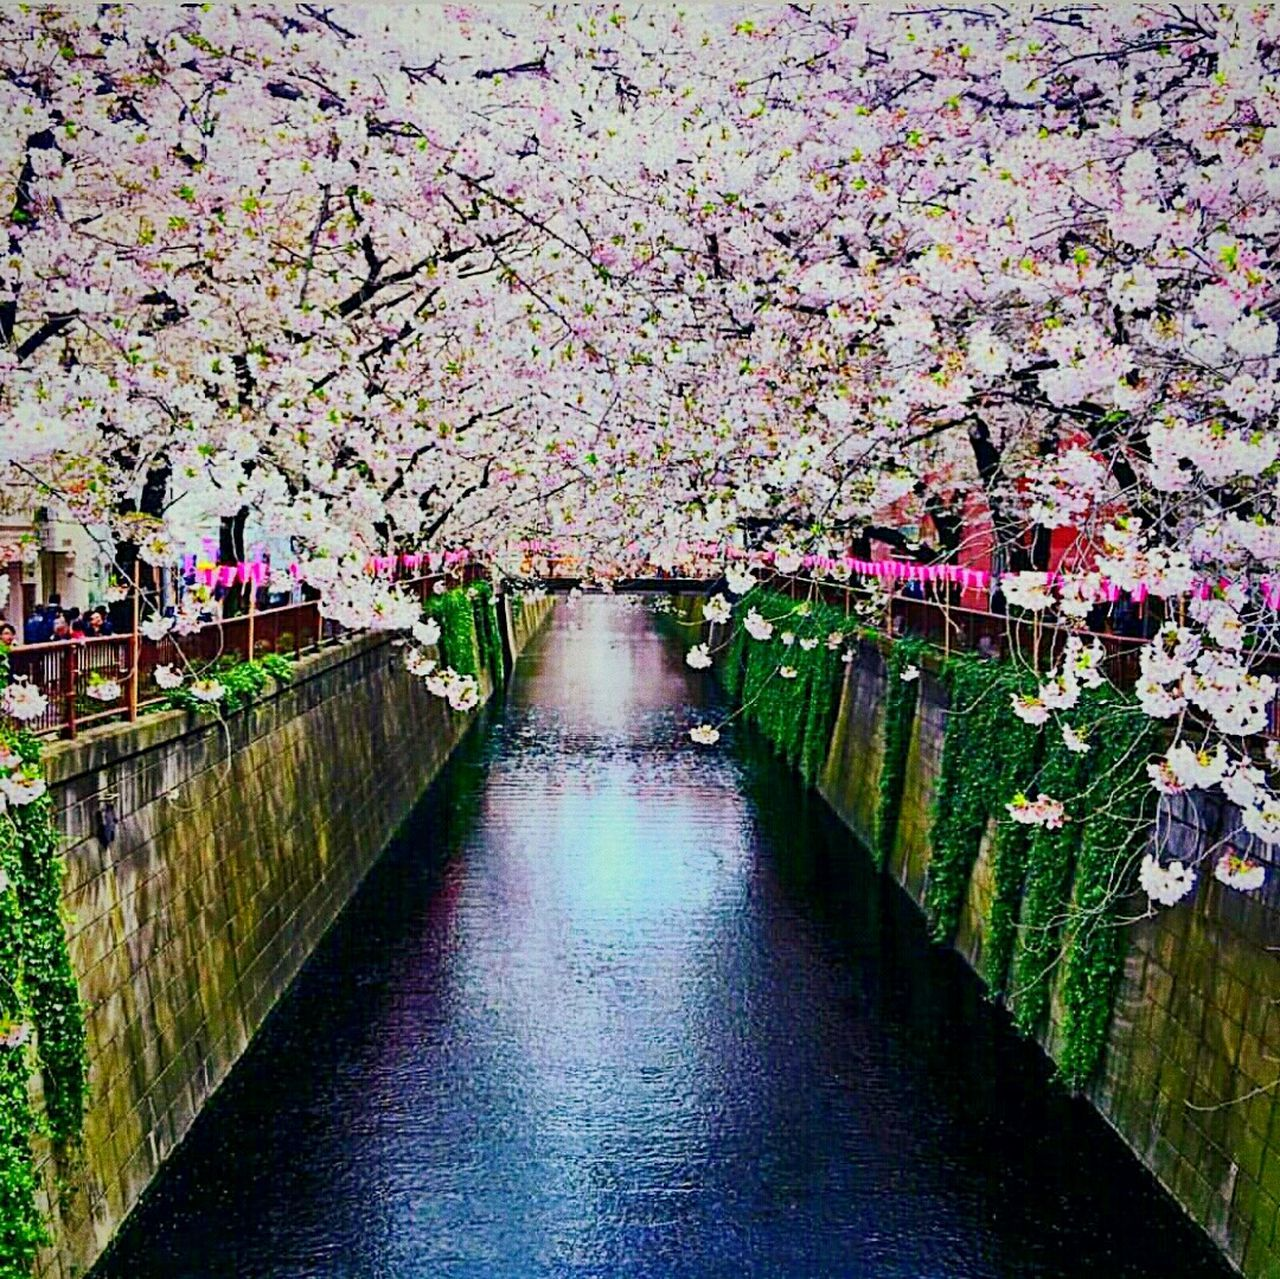 flower, blossom, springtime, beauty in nature, tree, cherry tree, nature, river, growth, freshness, no people, fragility, branch, outdoors, day, water, footbridge